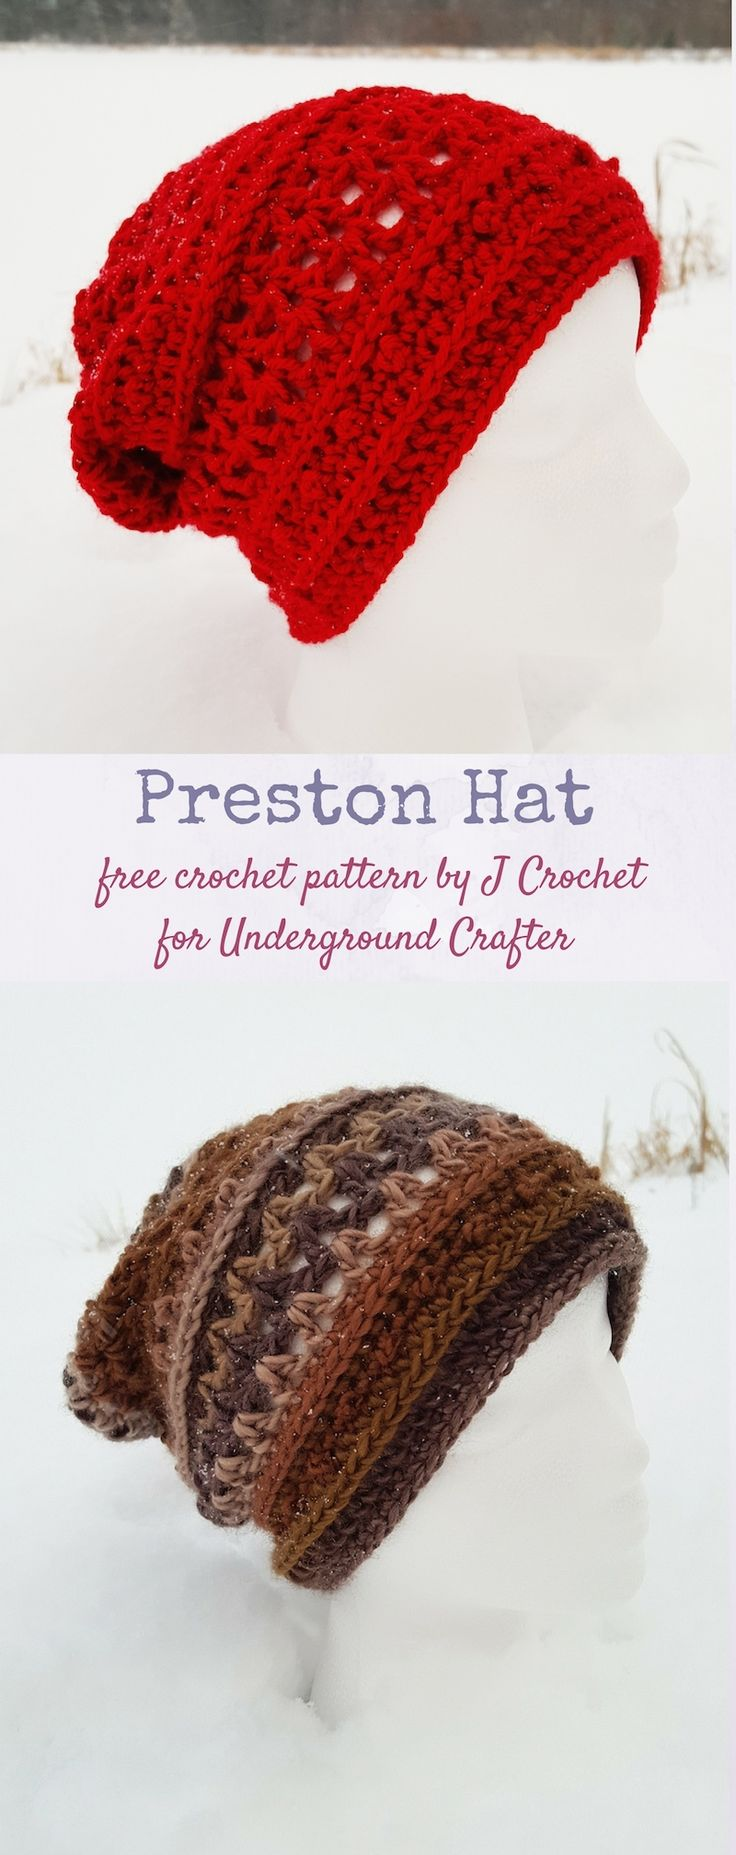 Free #crochet pattern: Preston Hat by J Crochet for Underground Crafter | This easy slouchy unisex beanie features a slightly open stitch pattern.